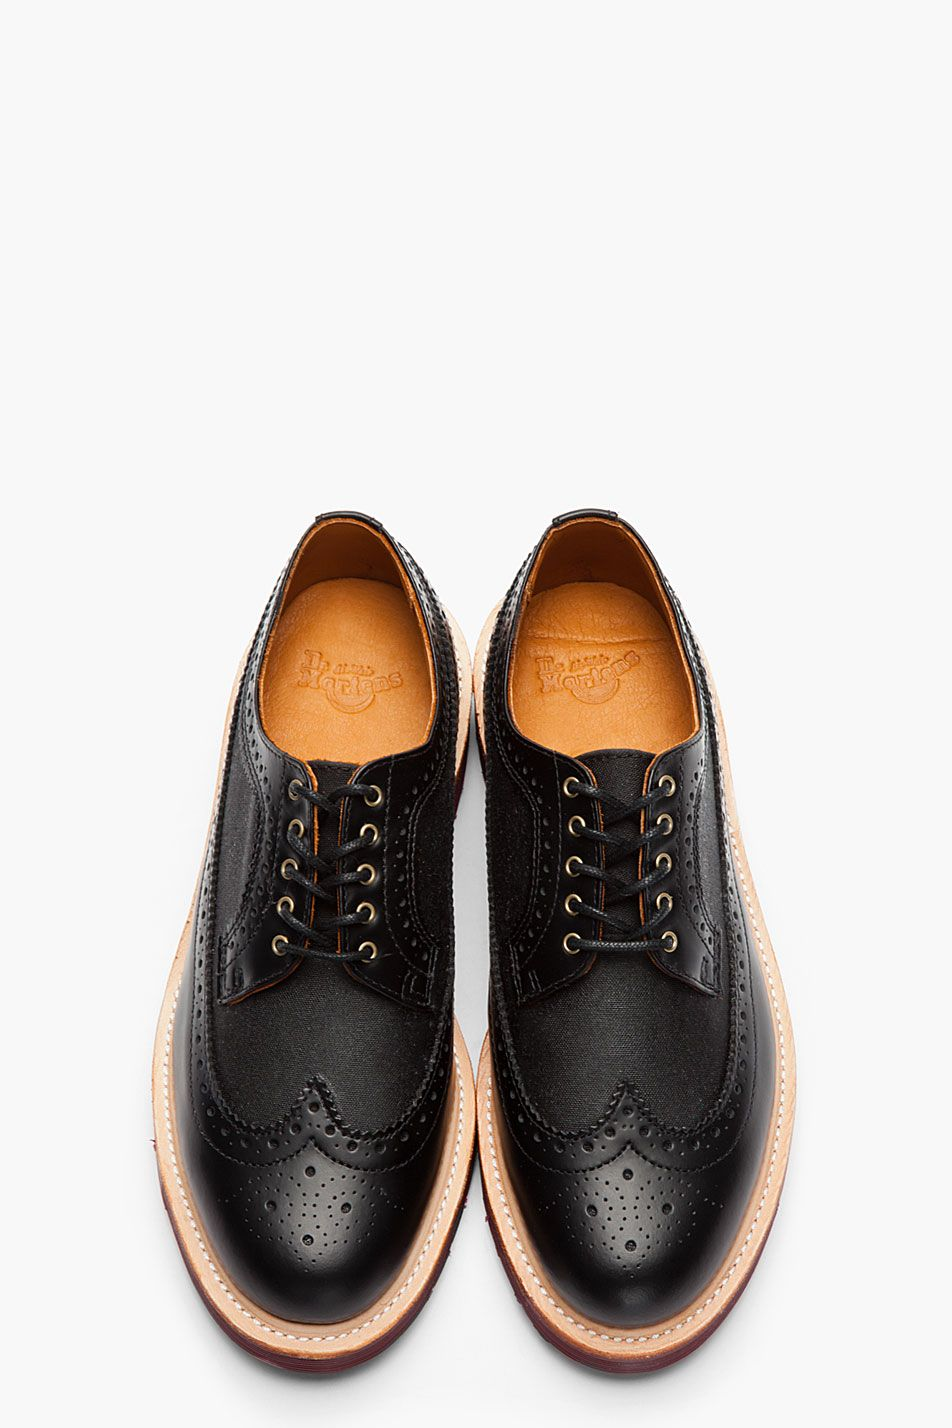 Thom Browne Point Welt Longwing Classique Brogue - Gris ntJwWBXAk0